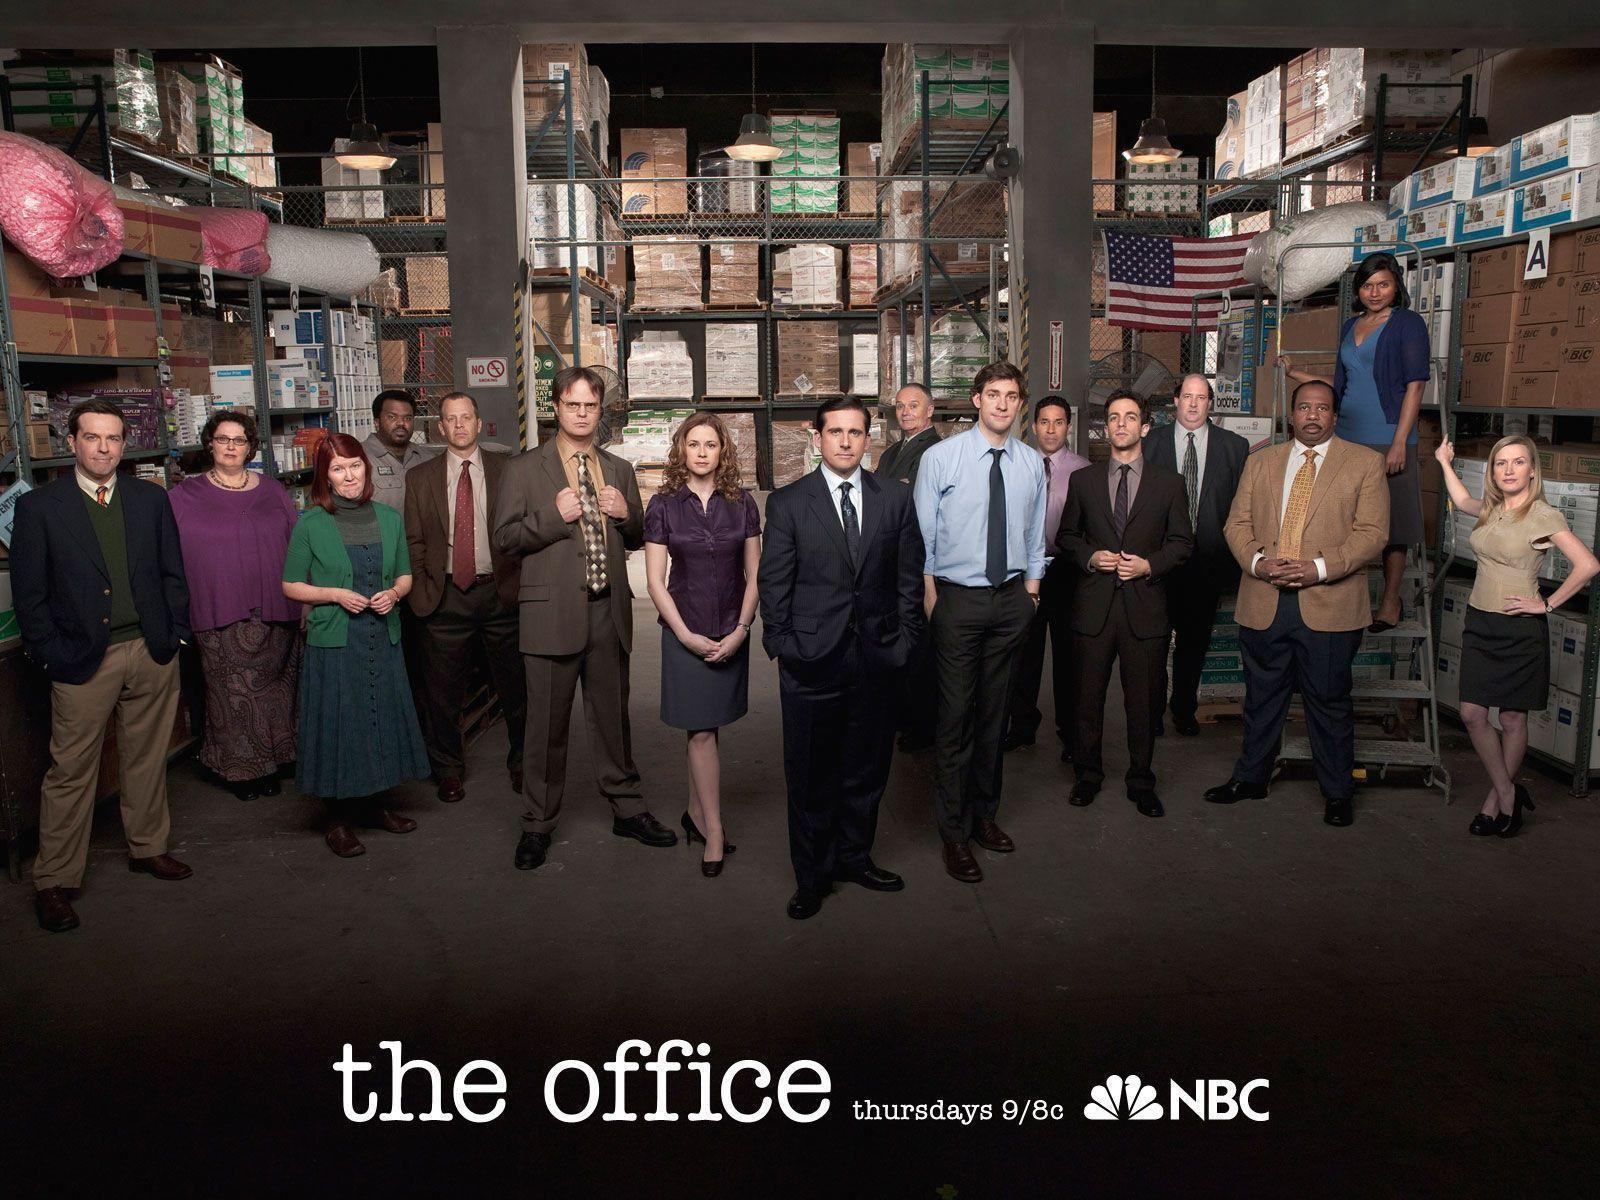 the office desktop 1024×768 wallpaper | Style Favor – Photos ...